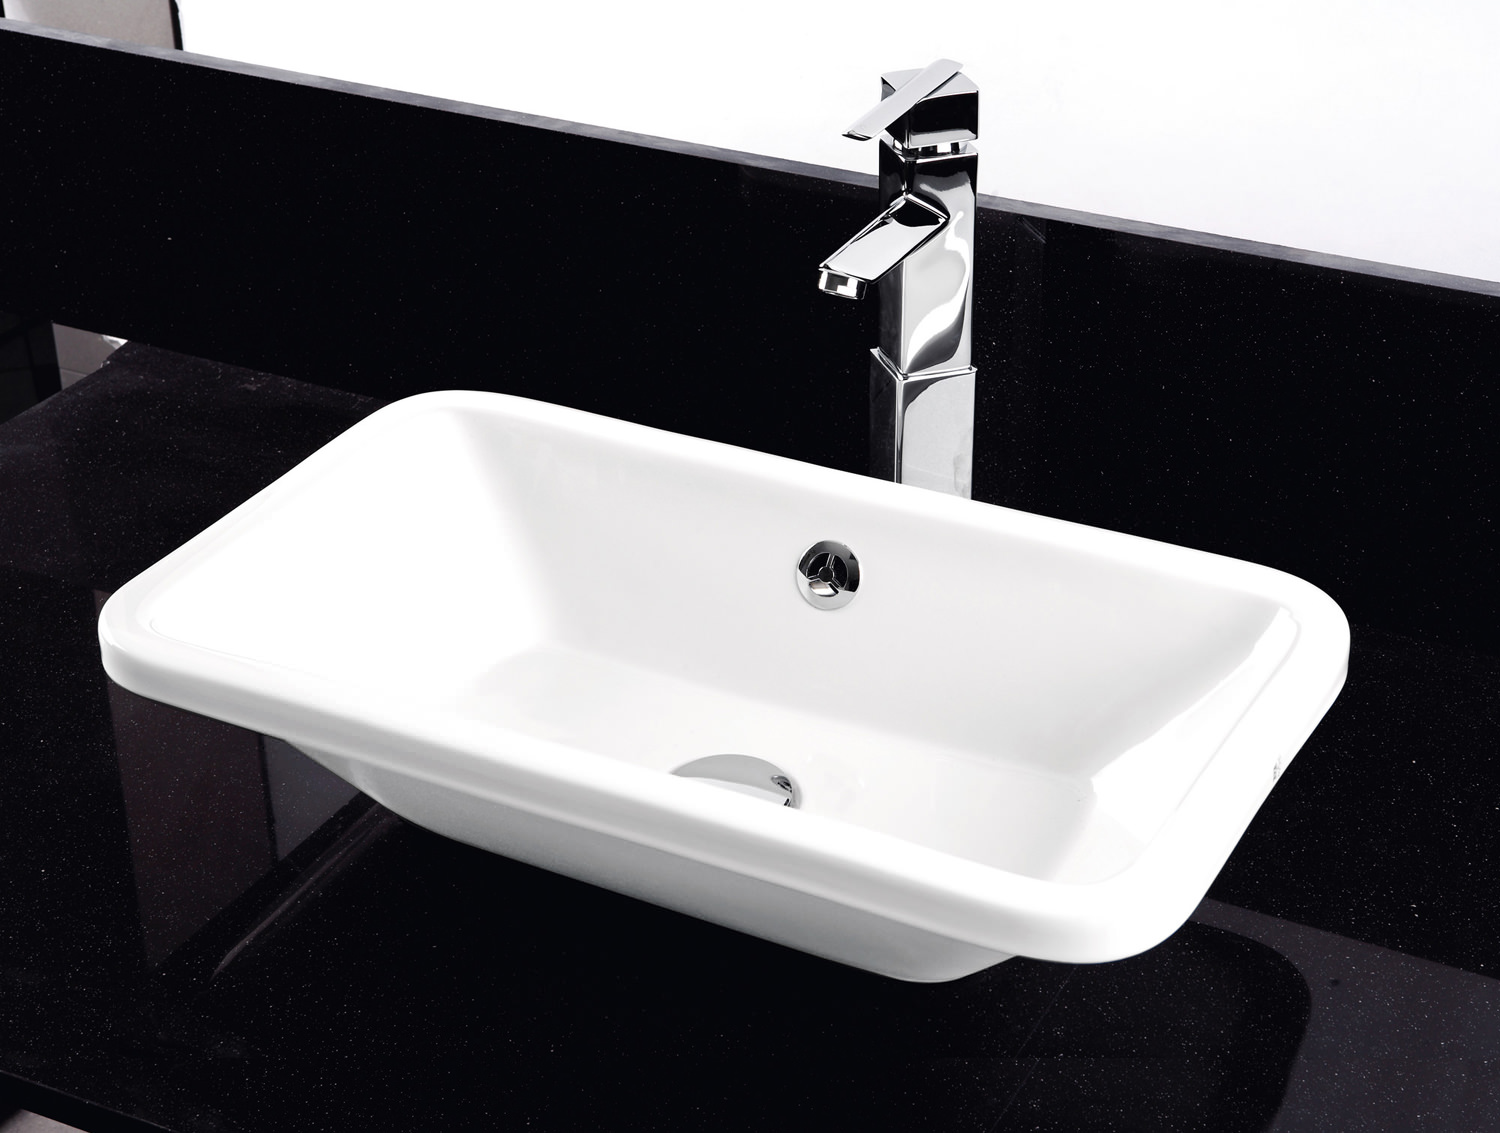 rak chameleon counter top basin 560mm. Black Bedroom Furniture Sets. Home Design Ideas